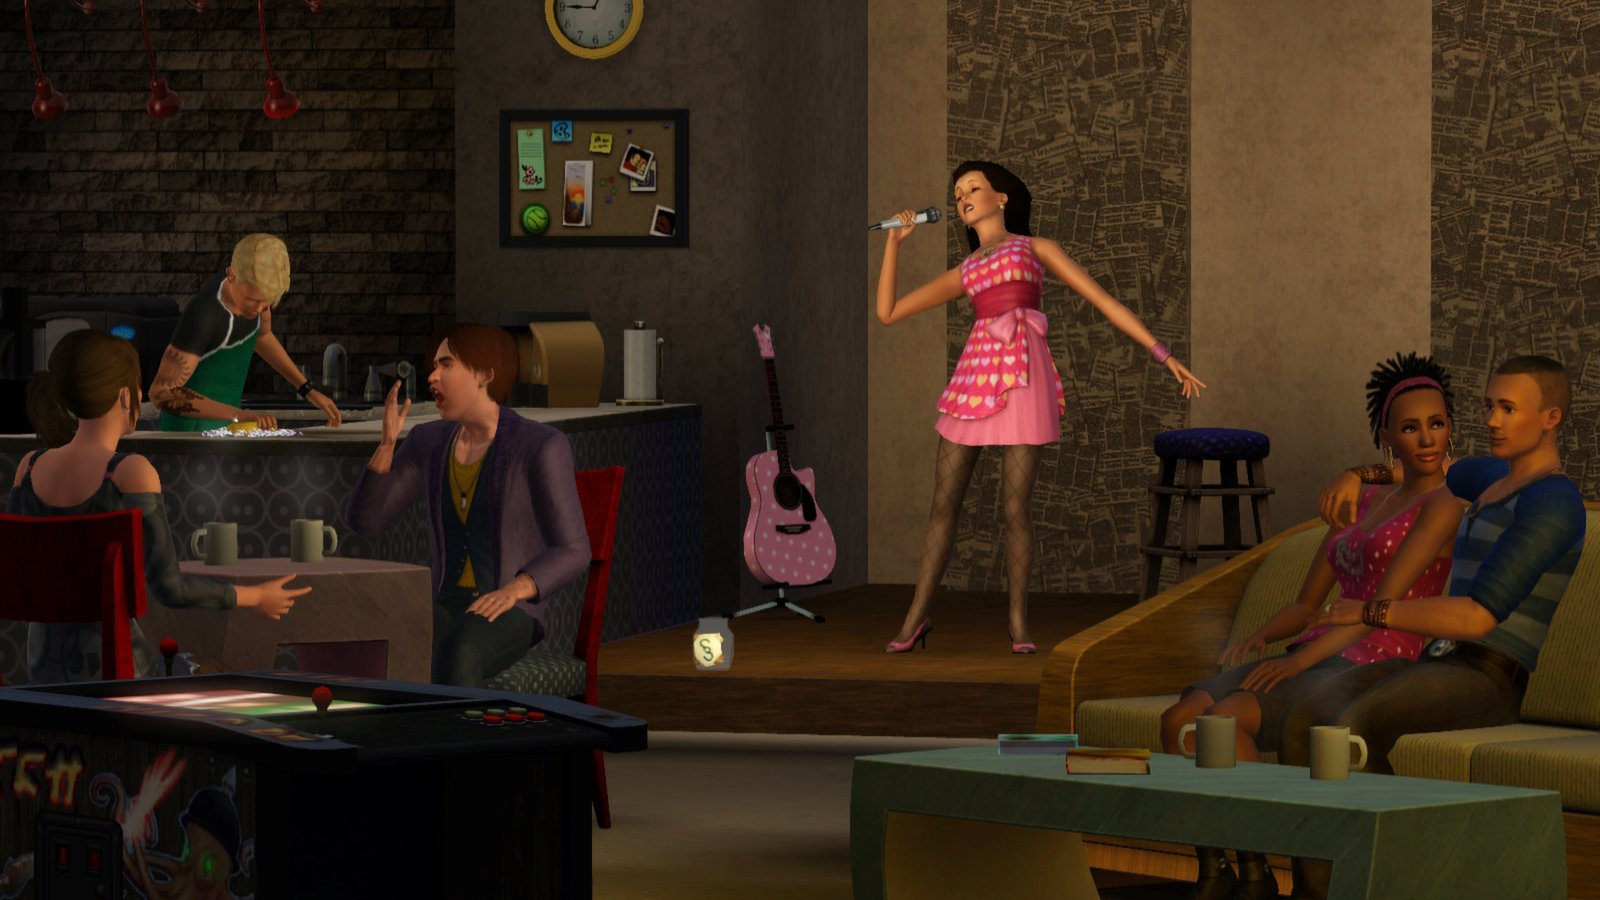 The Sims 3 Showtime 9